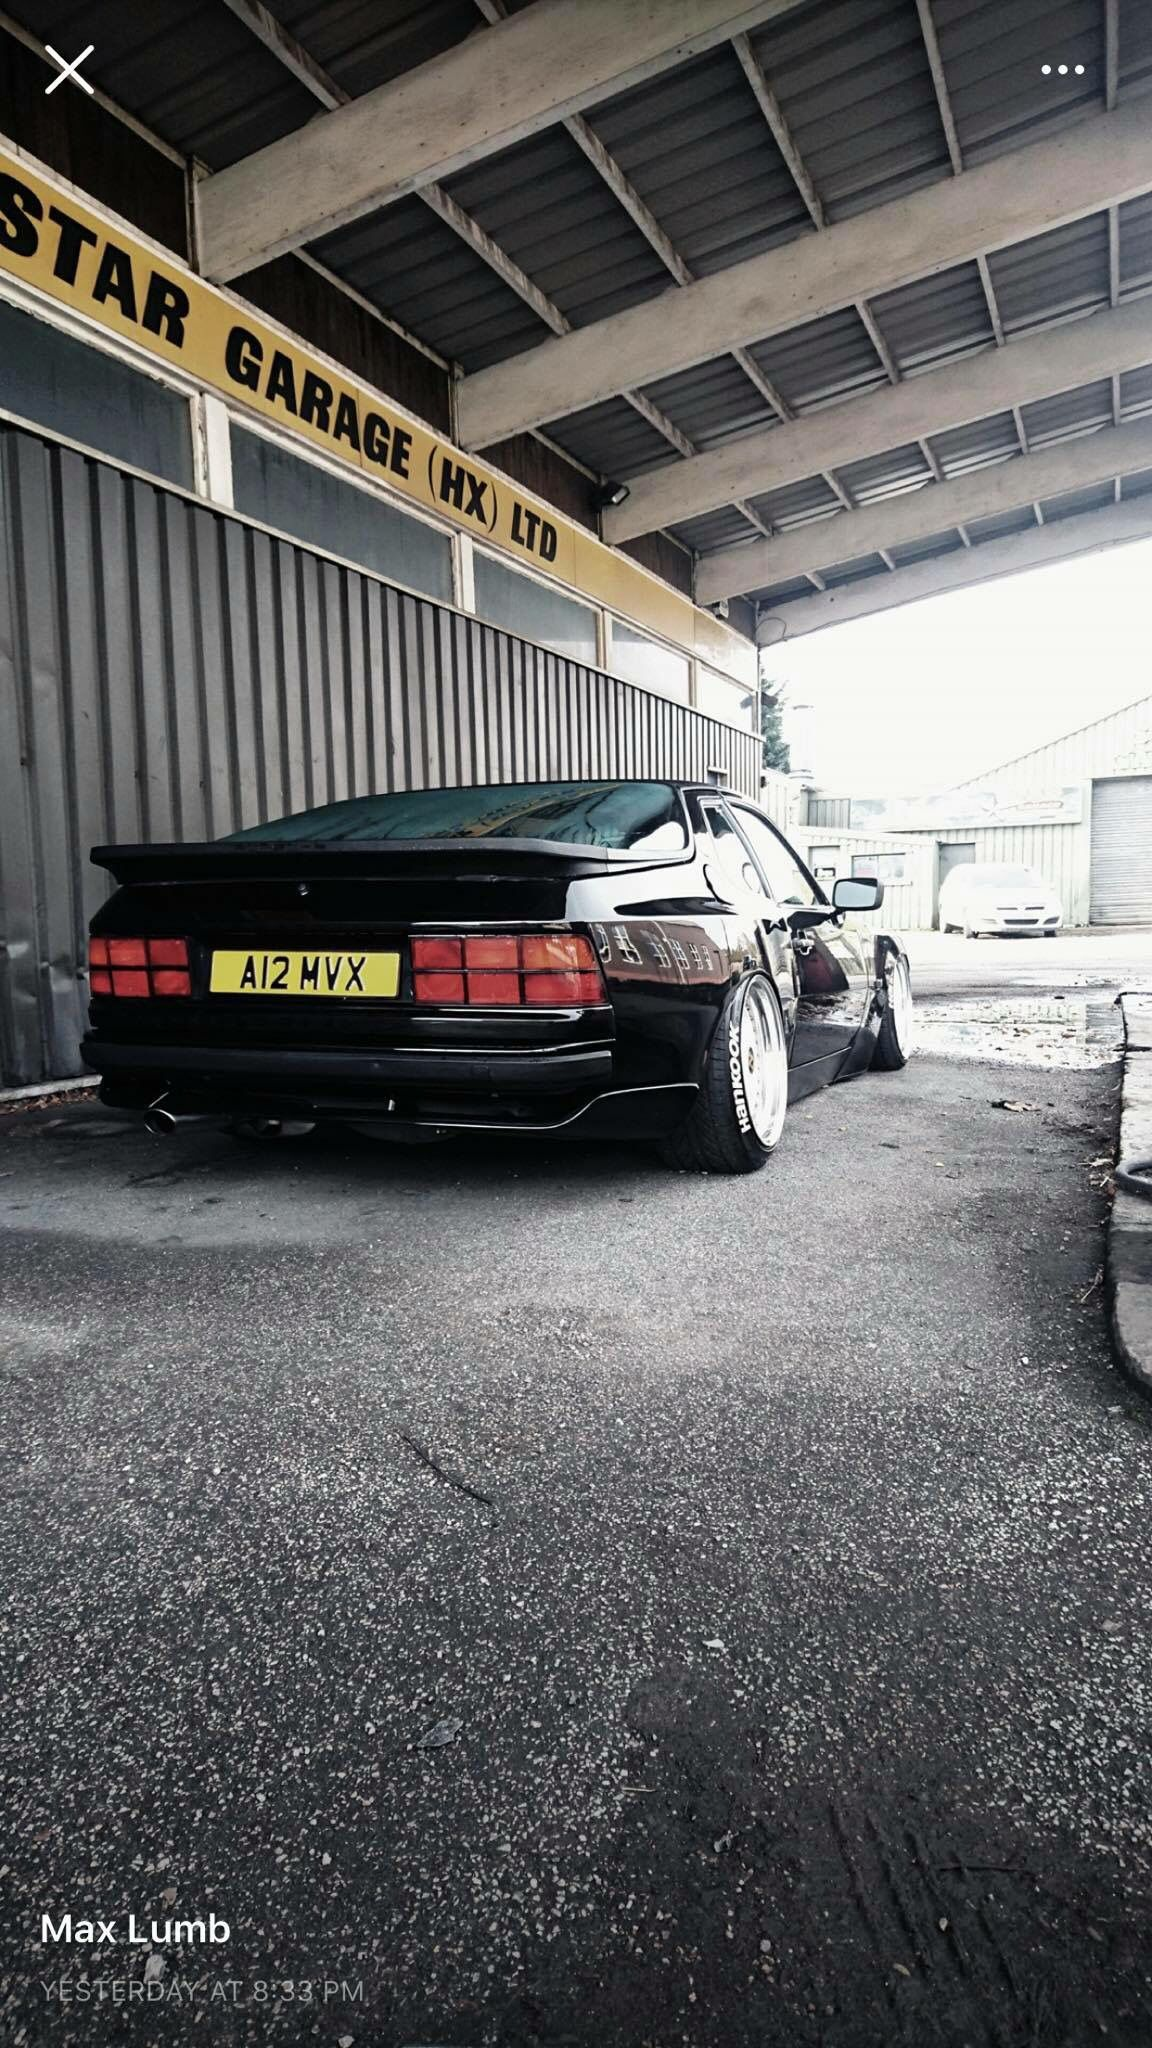 Porsche 944 Uk Row Rhd Spec With 951 Rear Diffuser And Lowered Stance Porsche 944 Vintage Porsche Porsche